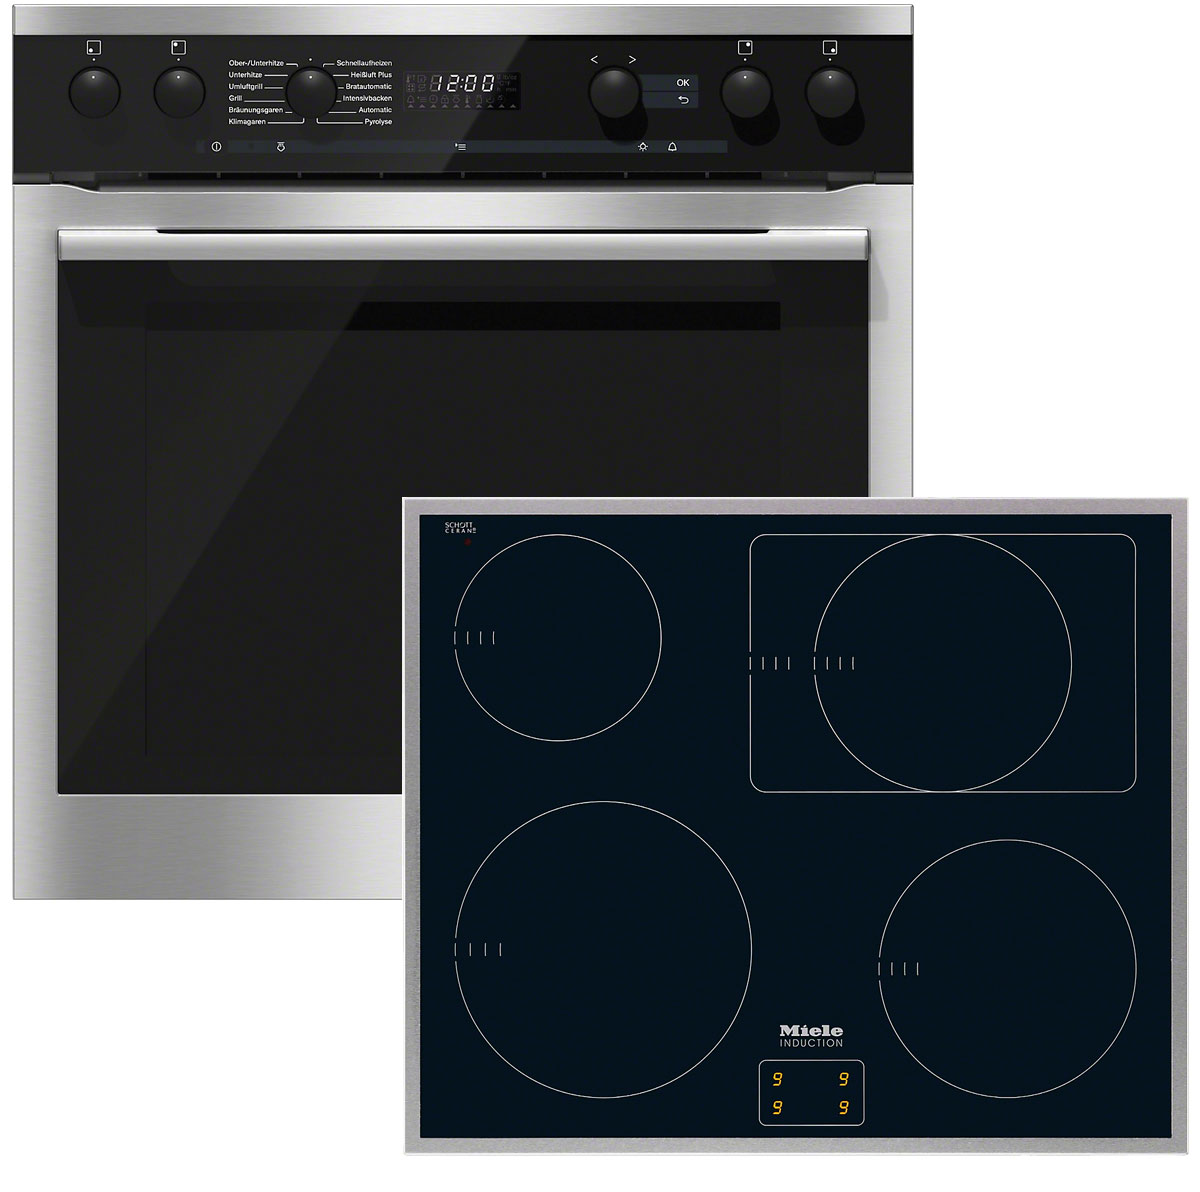 miele herdset h6167 ep edelstahl km6090 vs elektro. Black Bedroom Furniture Sets. Home Design Ideas